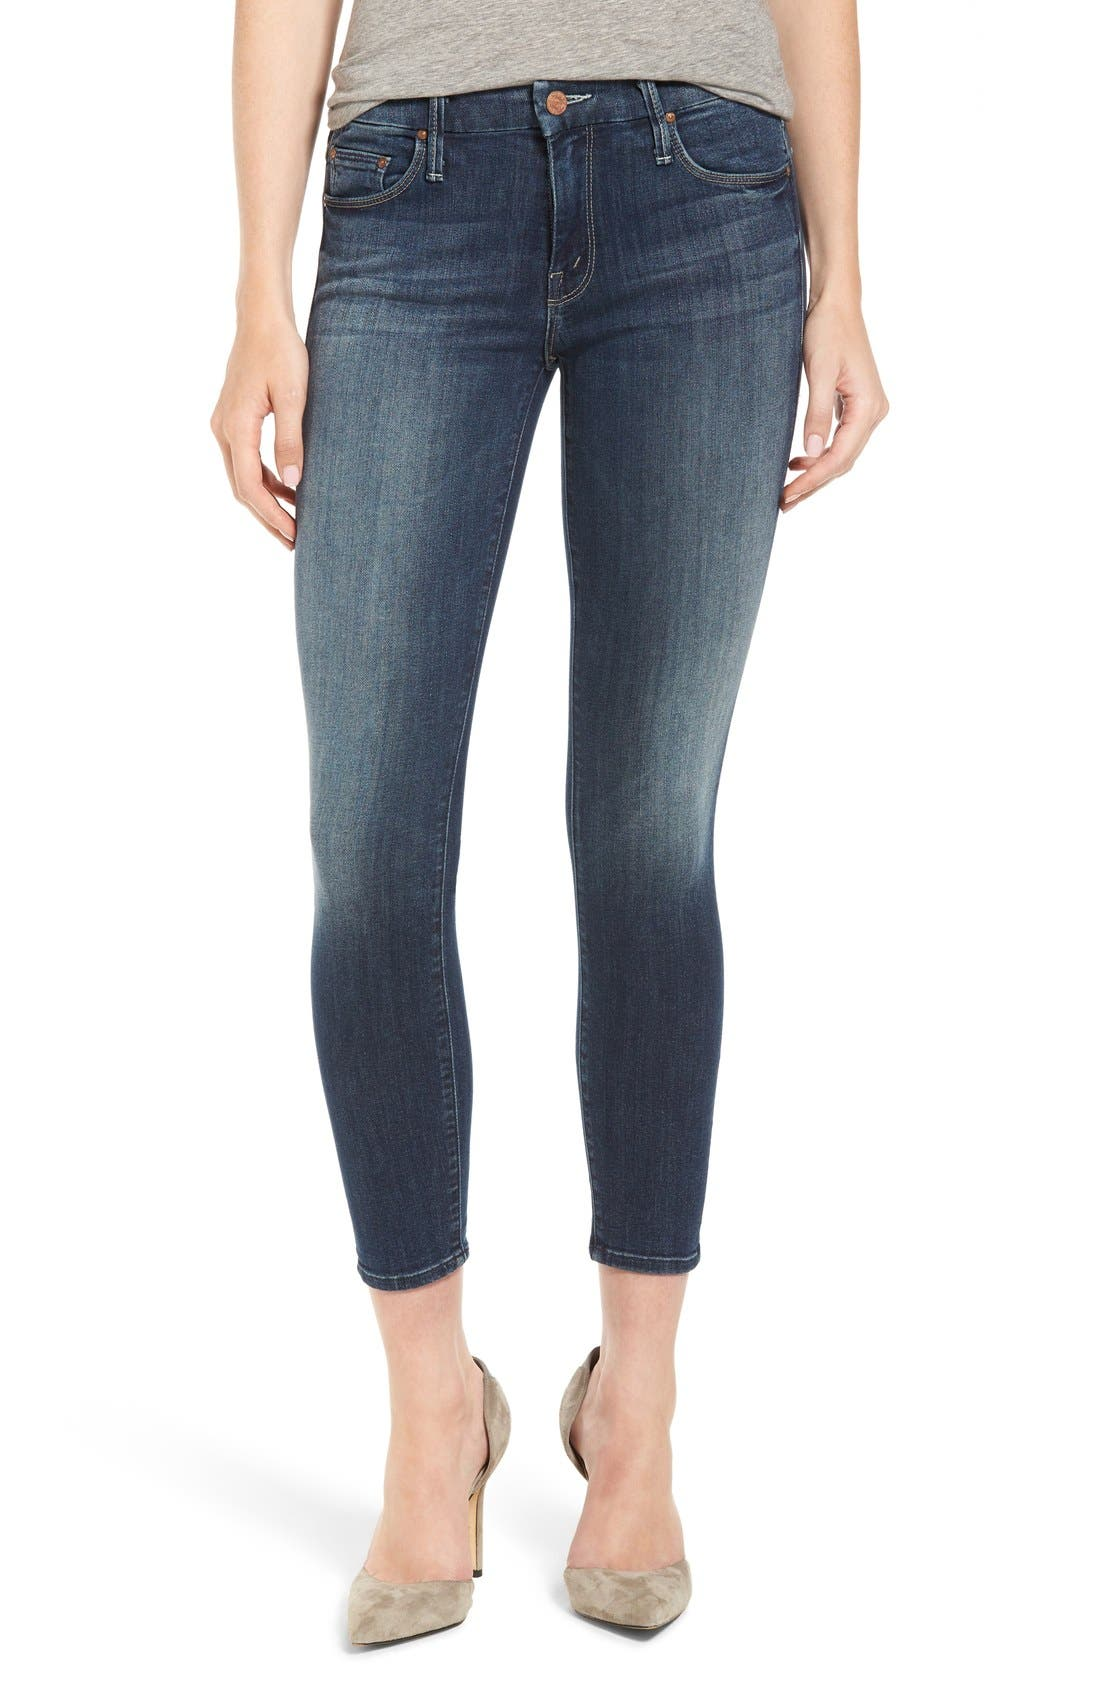 'The Looker' Crop Skinny Jeans,                             Alternate thumbnail 7, color,                             439